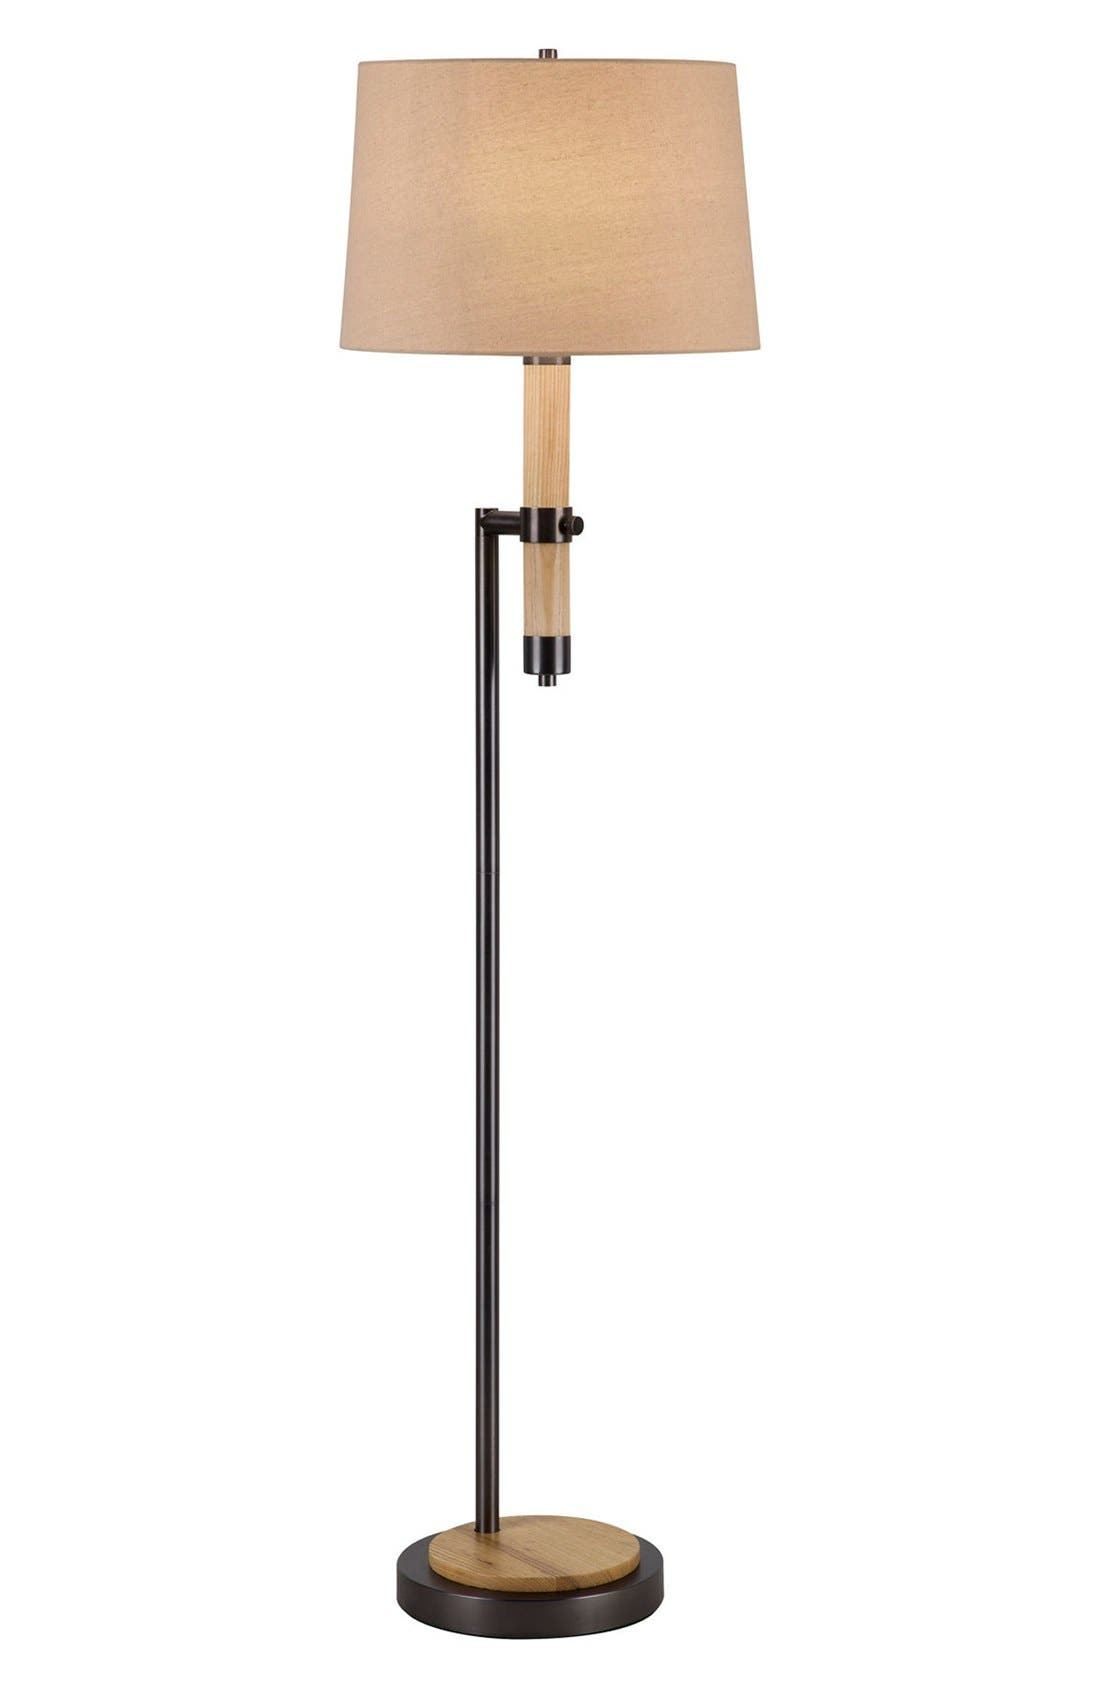 JAlexander Wood & Metal Floor Lamp